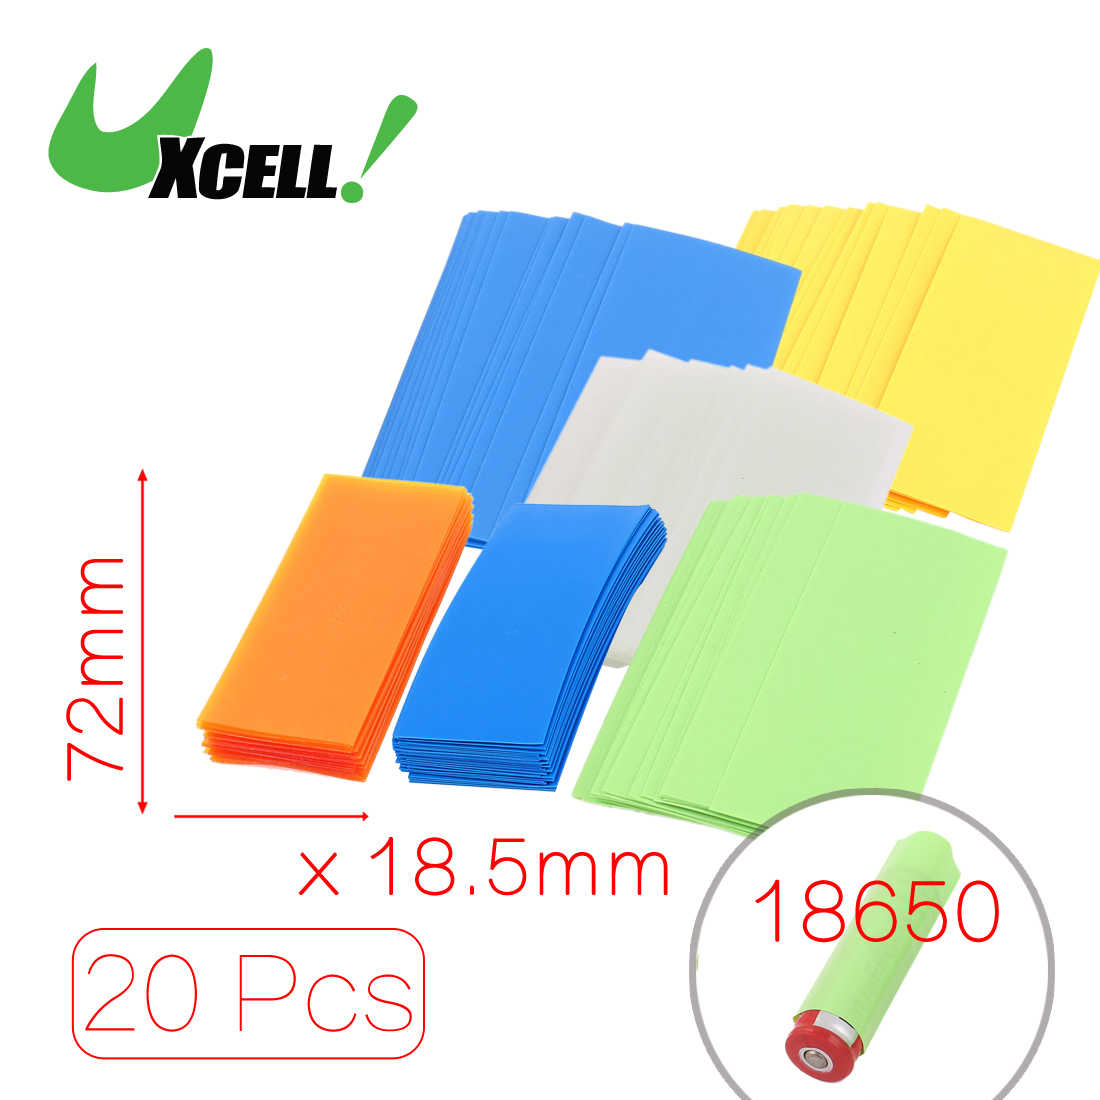 Uxcell 20Pcs 29.5Mm 18.5Mm Pvc Heat Shrink Tubing For Single 18650/18500 Battery .bluecleargreenyellow